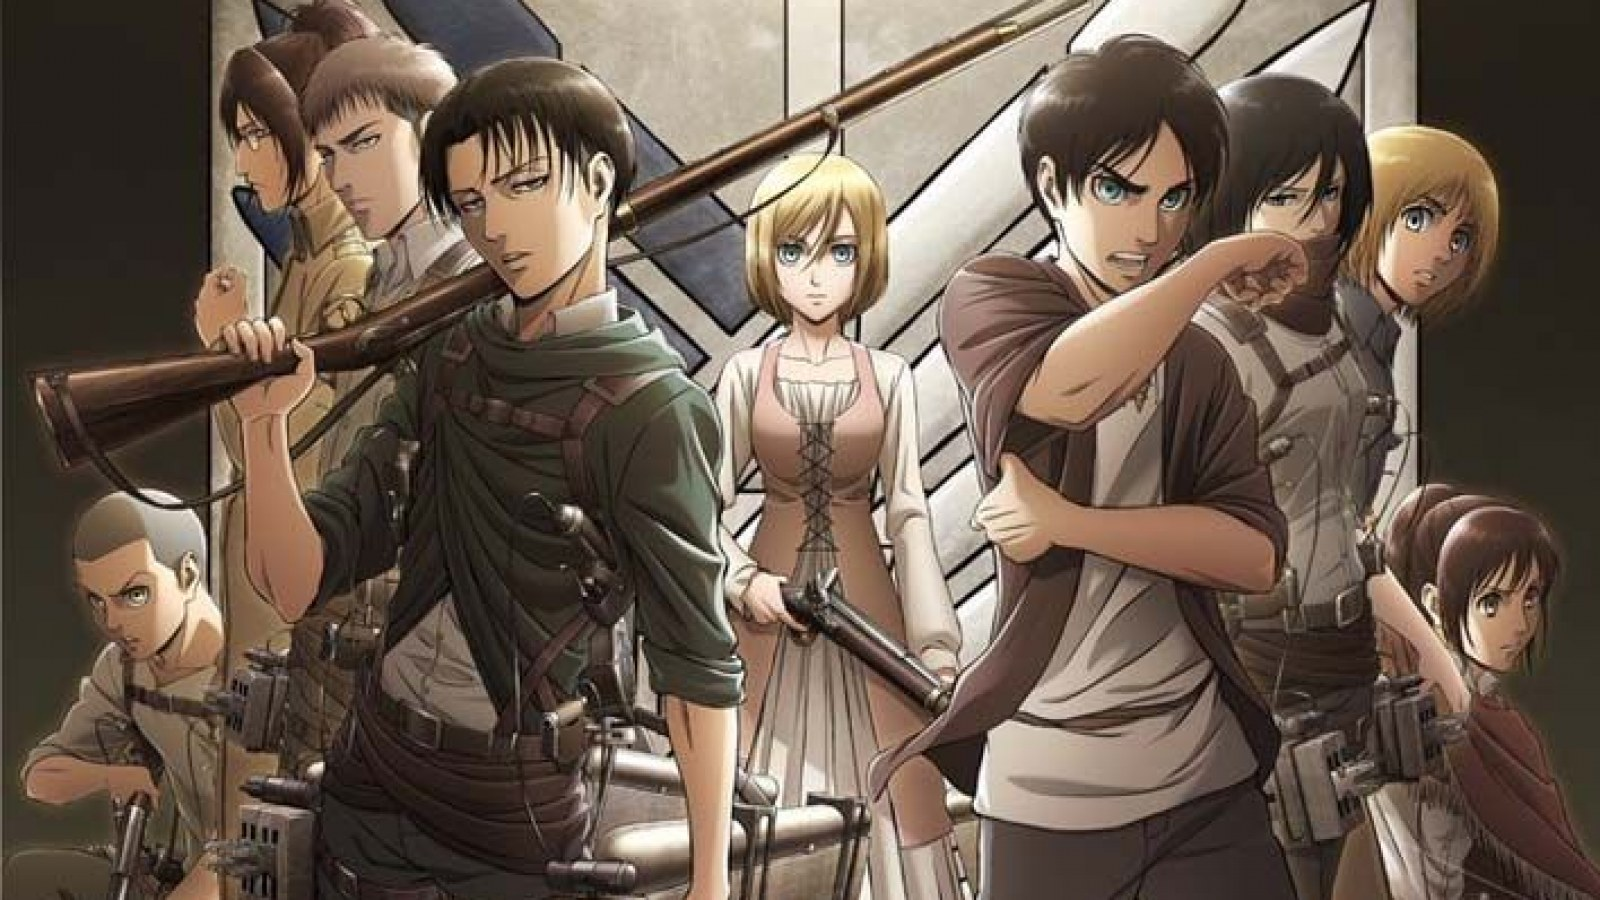 Attack on Titan Chapter 139 Manuscript Update by Hajime Isayama